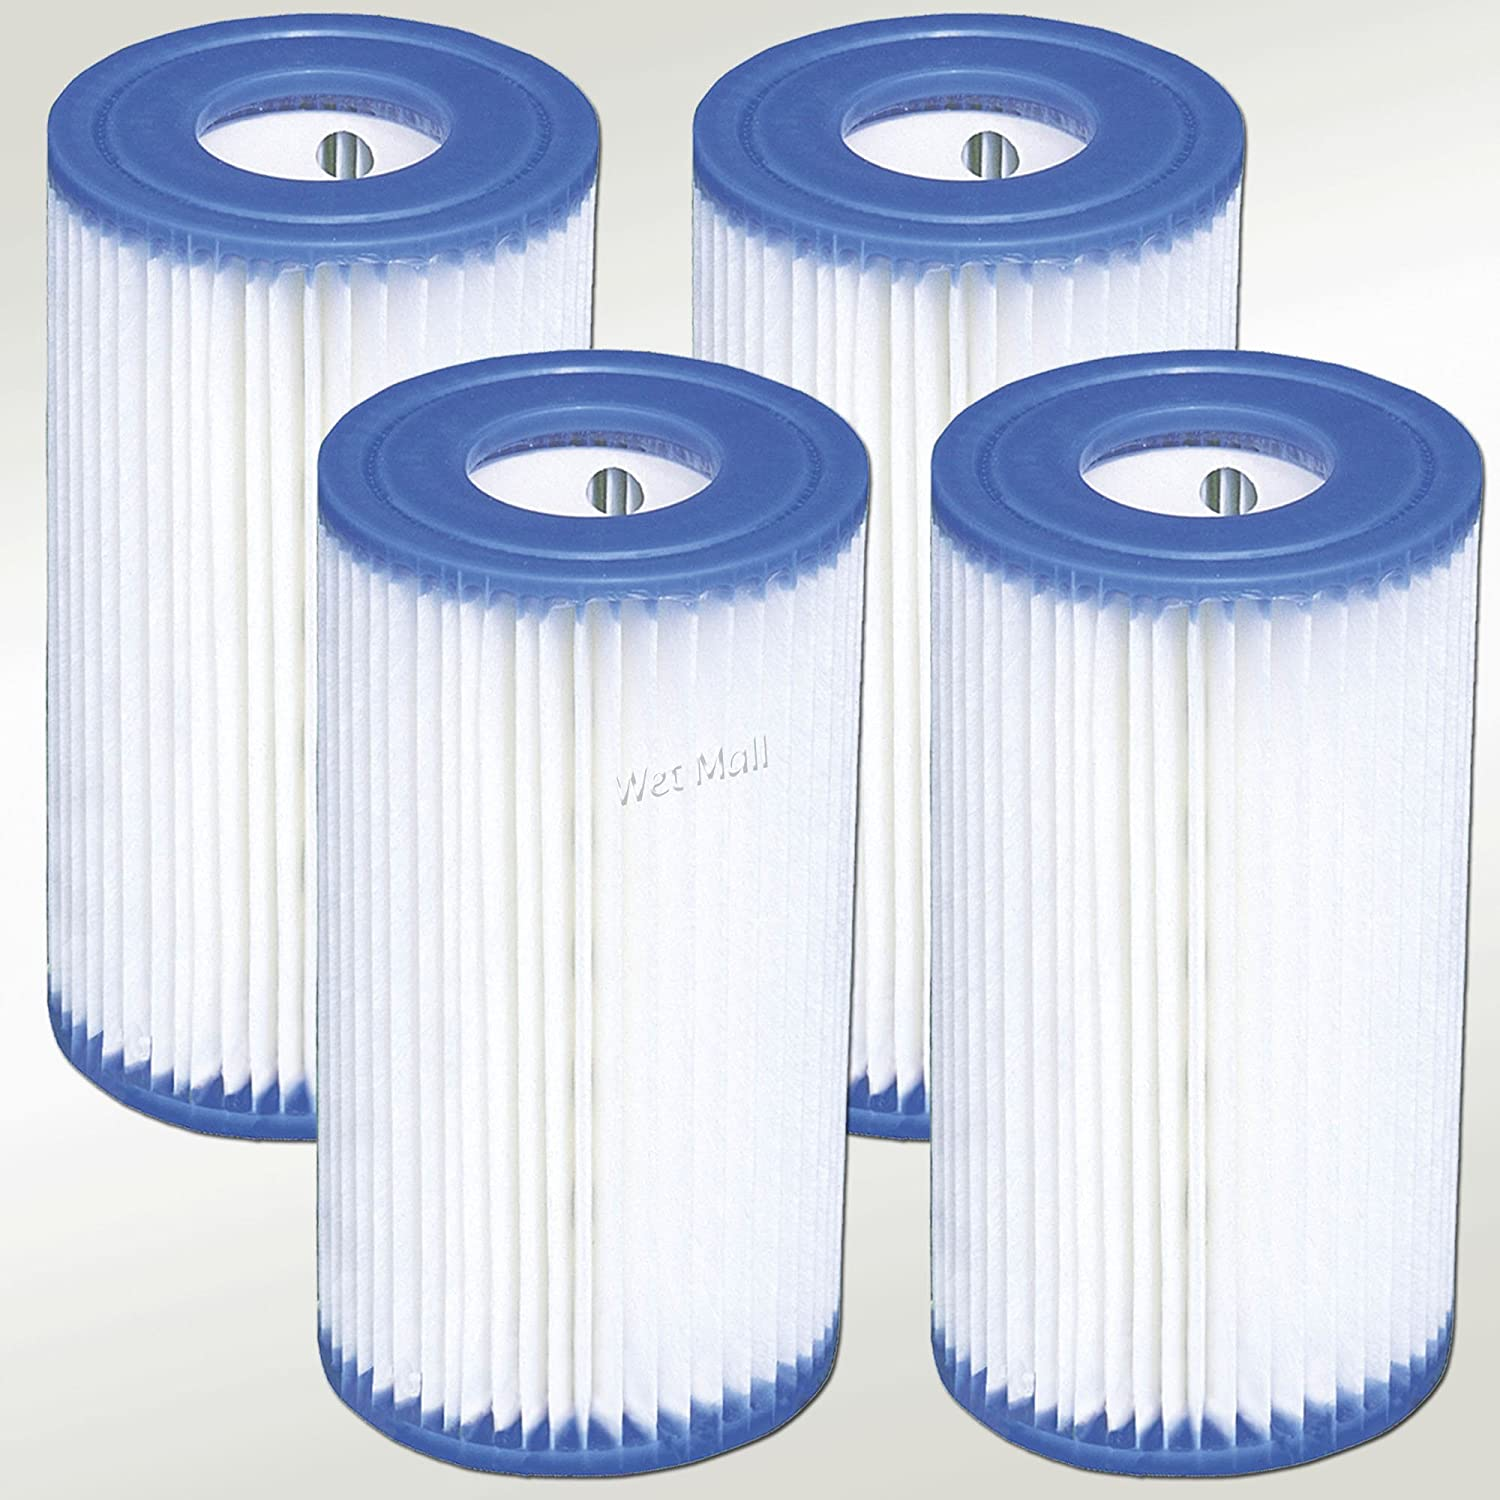 INTEX Easy Set Pool Type A Filter Cartridges - 59900E (4 pack), New, Free Shipping